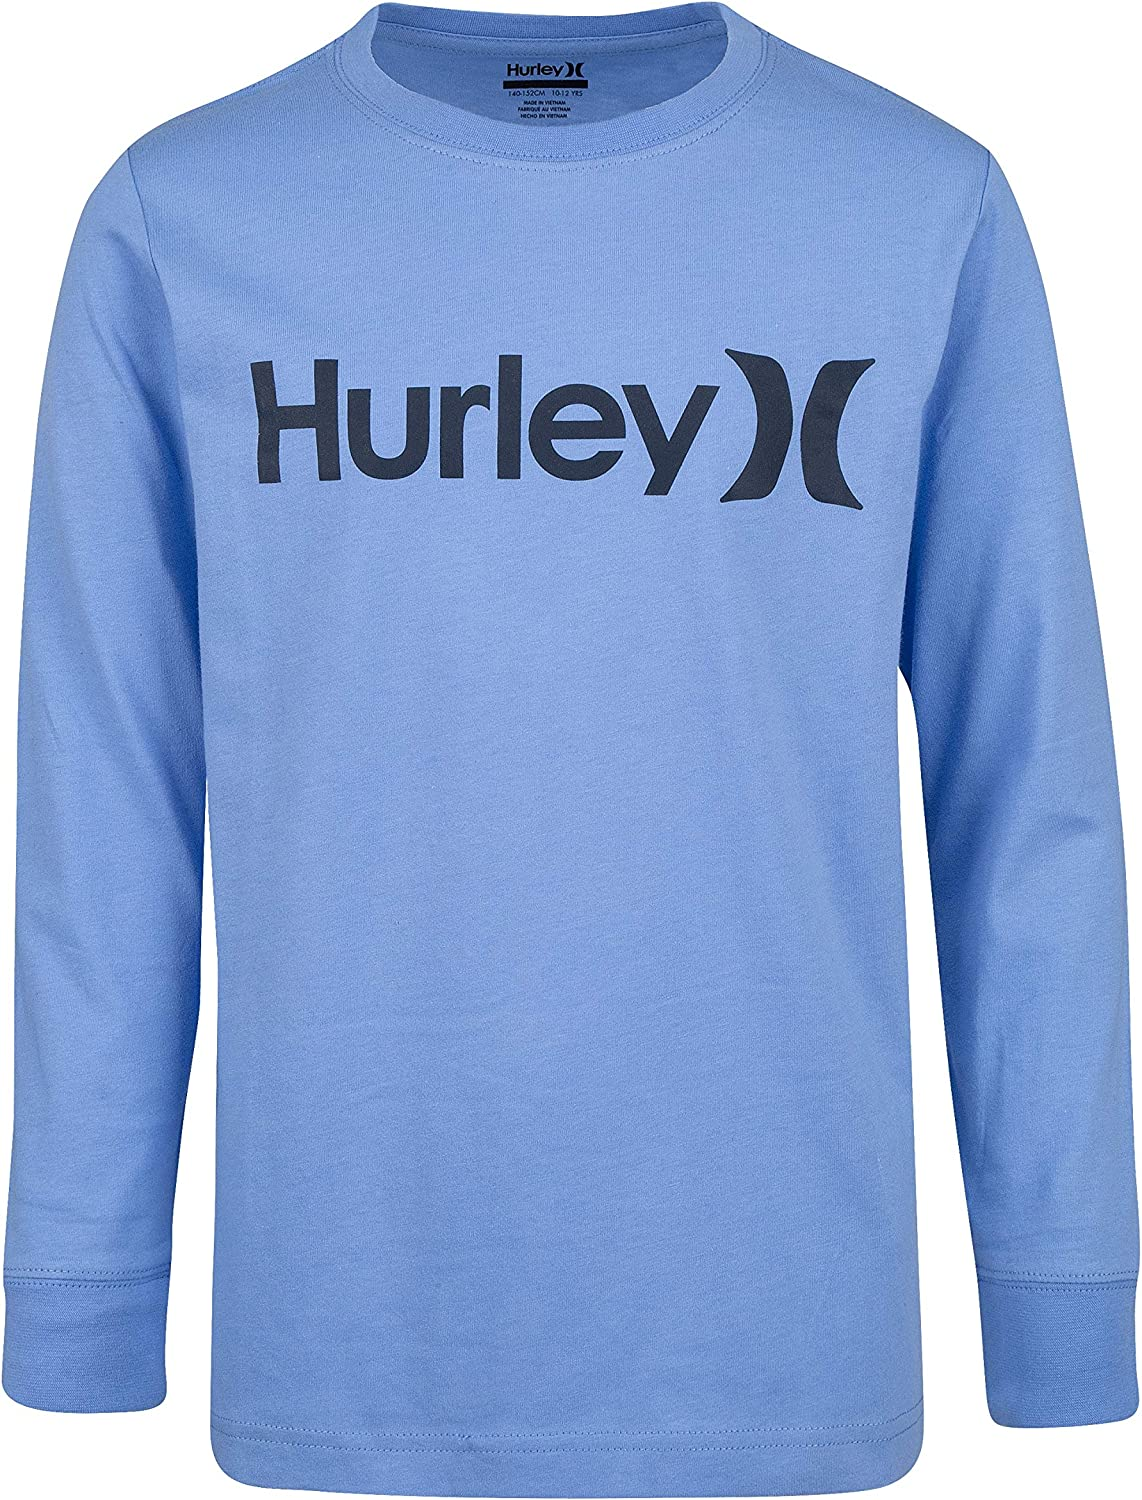 Hurley Kids One and Only Graphic T-Shirt